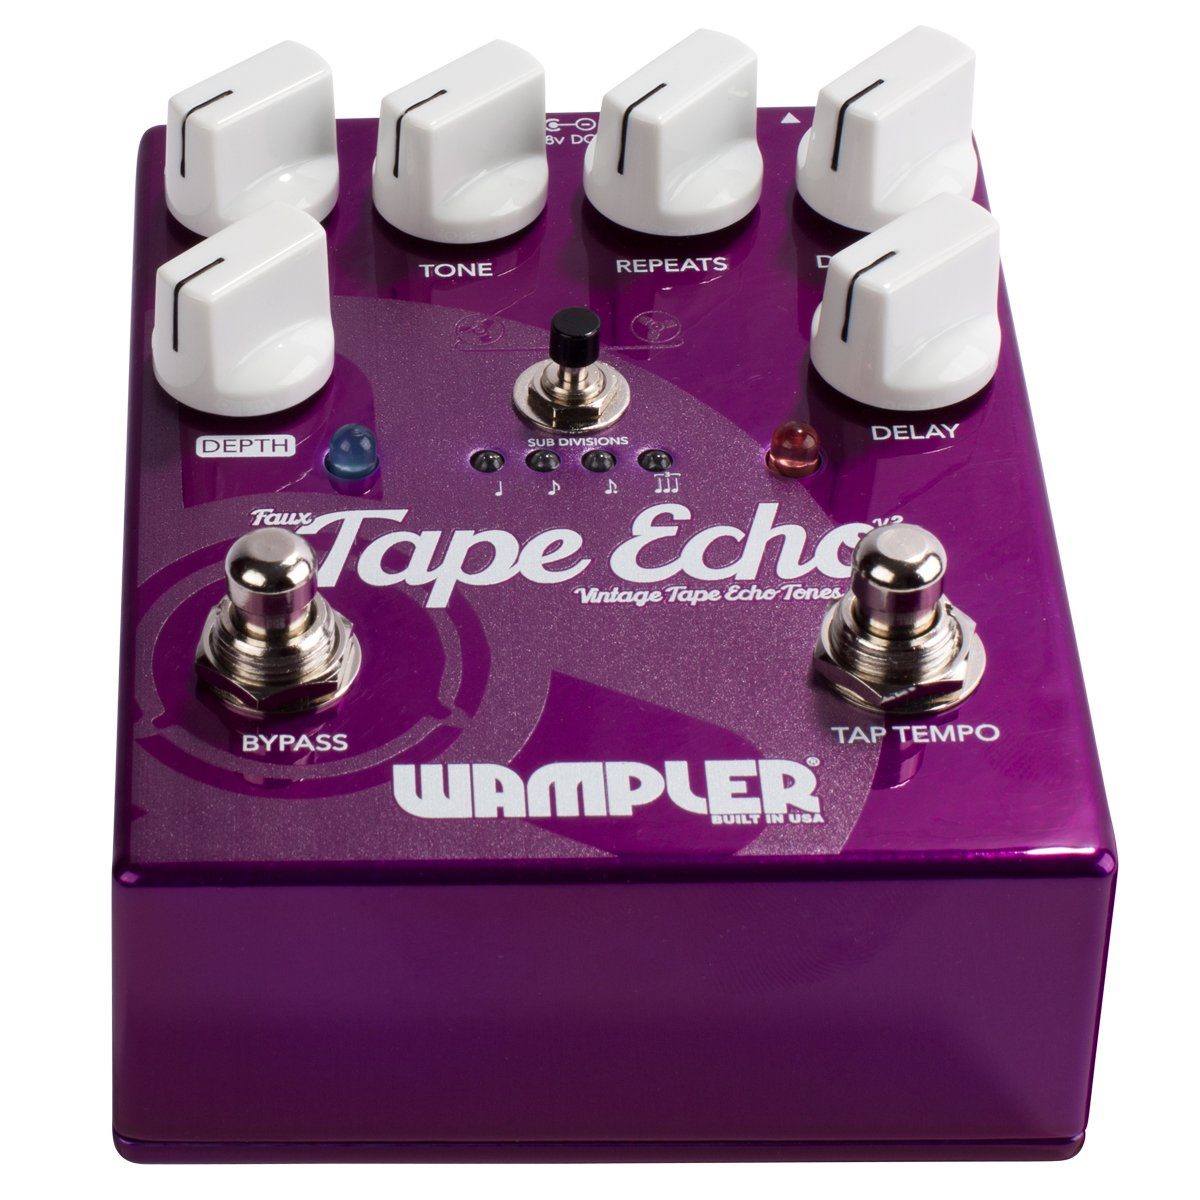 Wampler Faux Tape Echo V2 Delay Effects Pedal